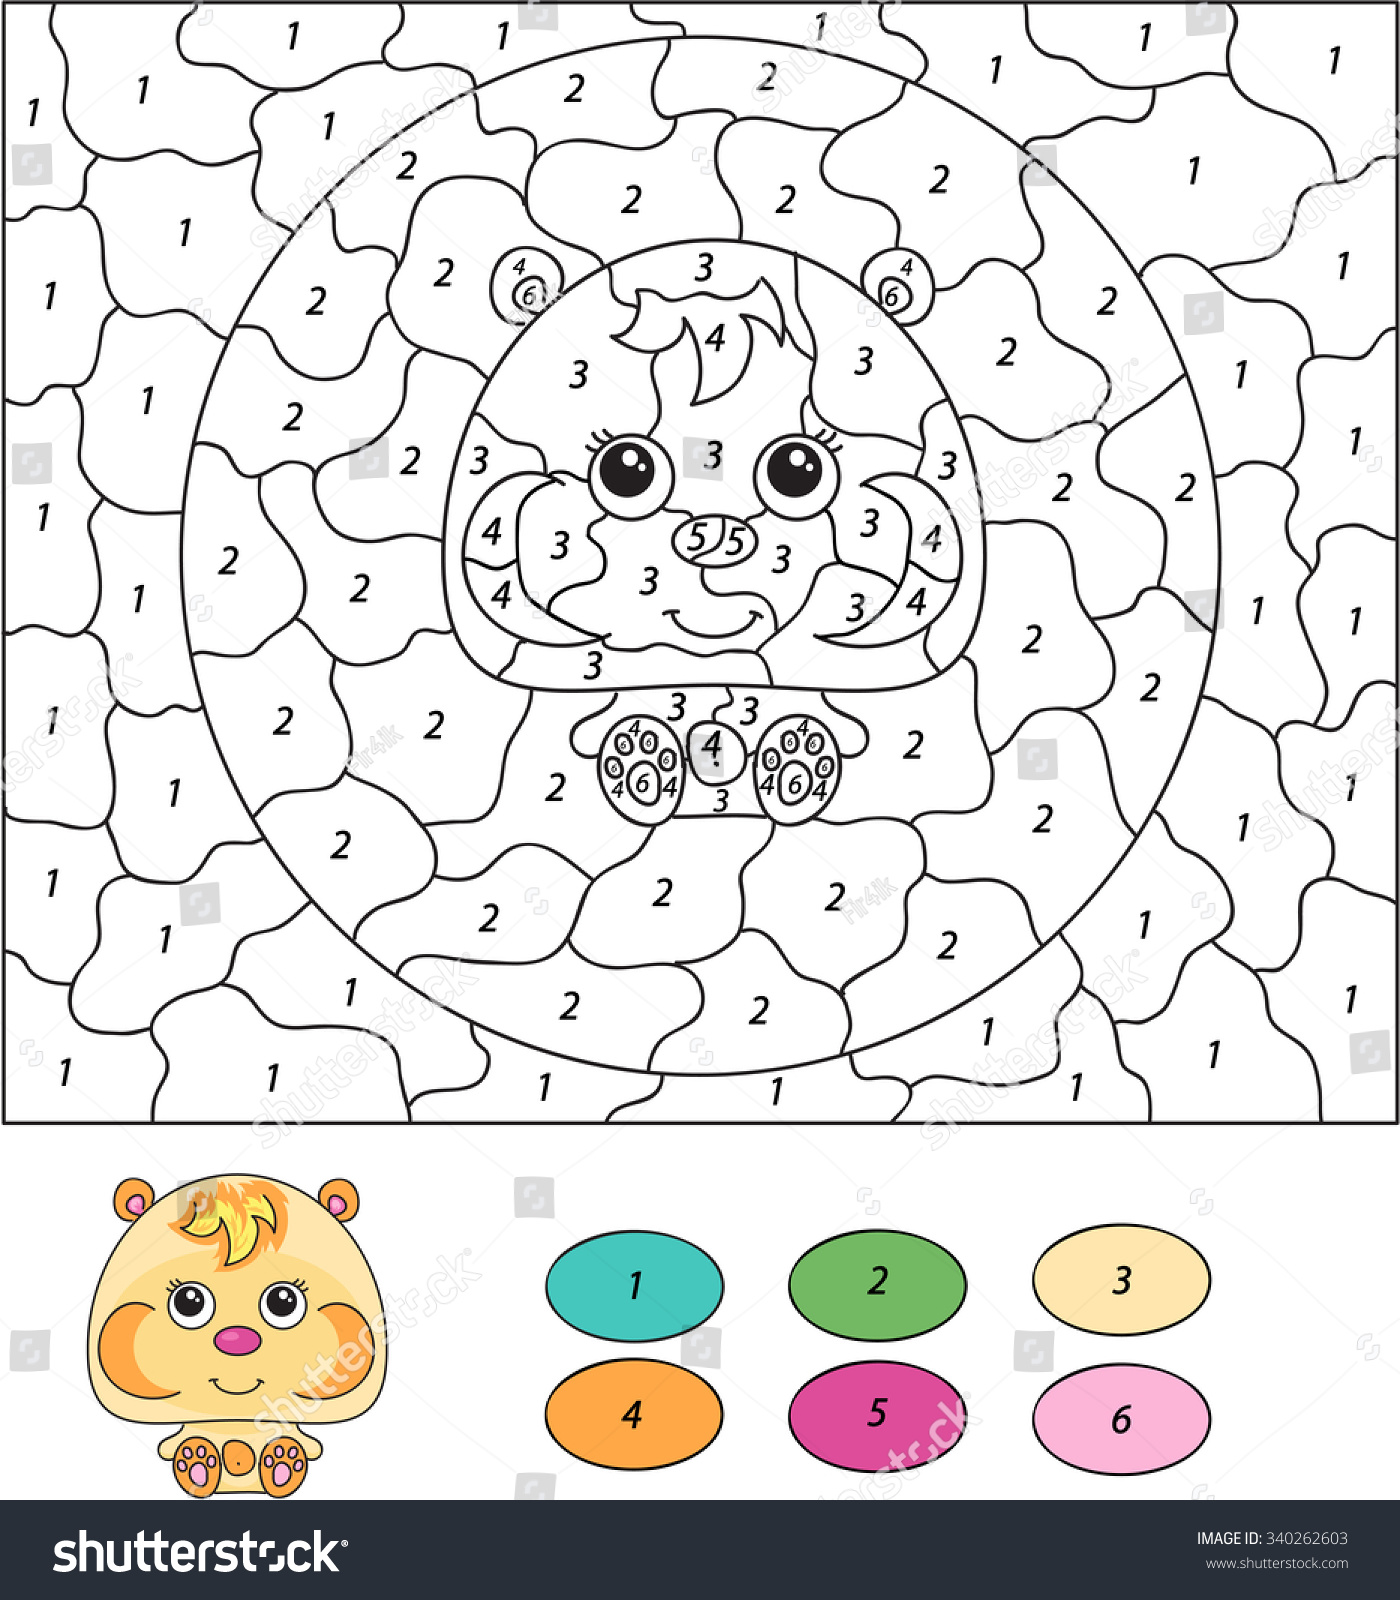 color by number educational game kids stock illustration 340262603